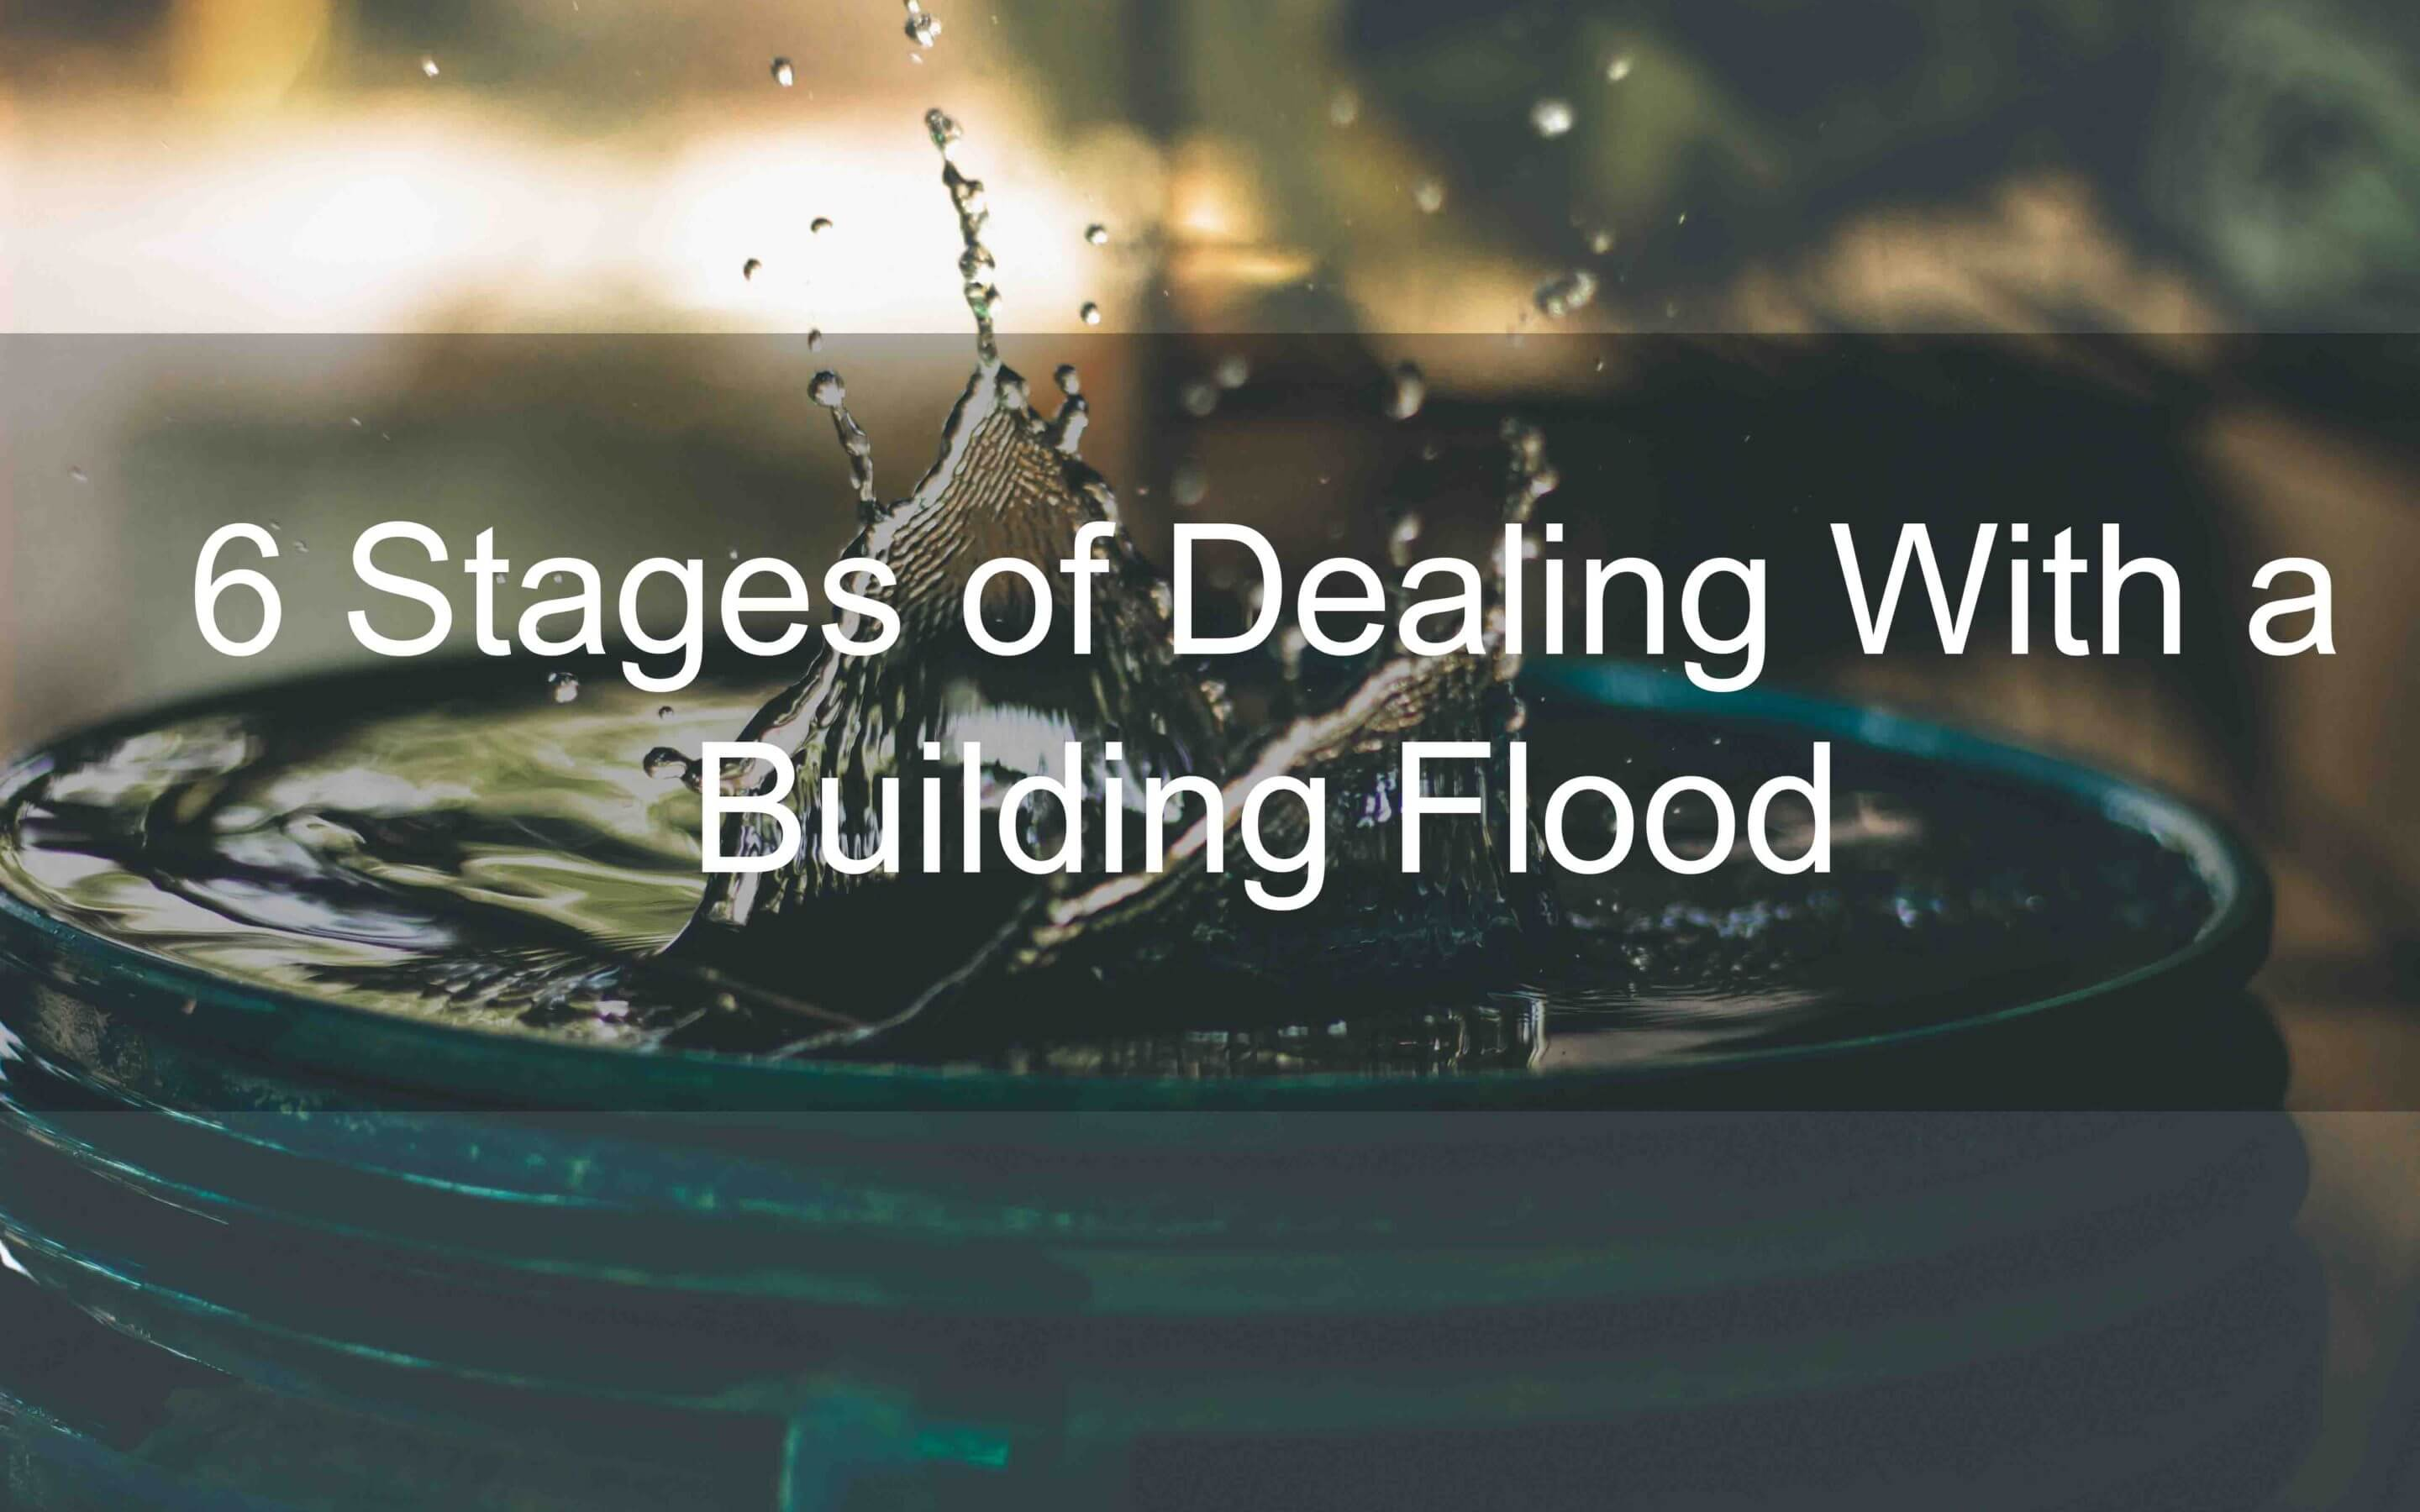 6 Stages of Dealing With a Building Flood